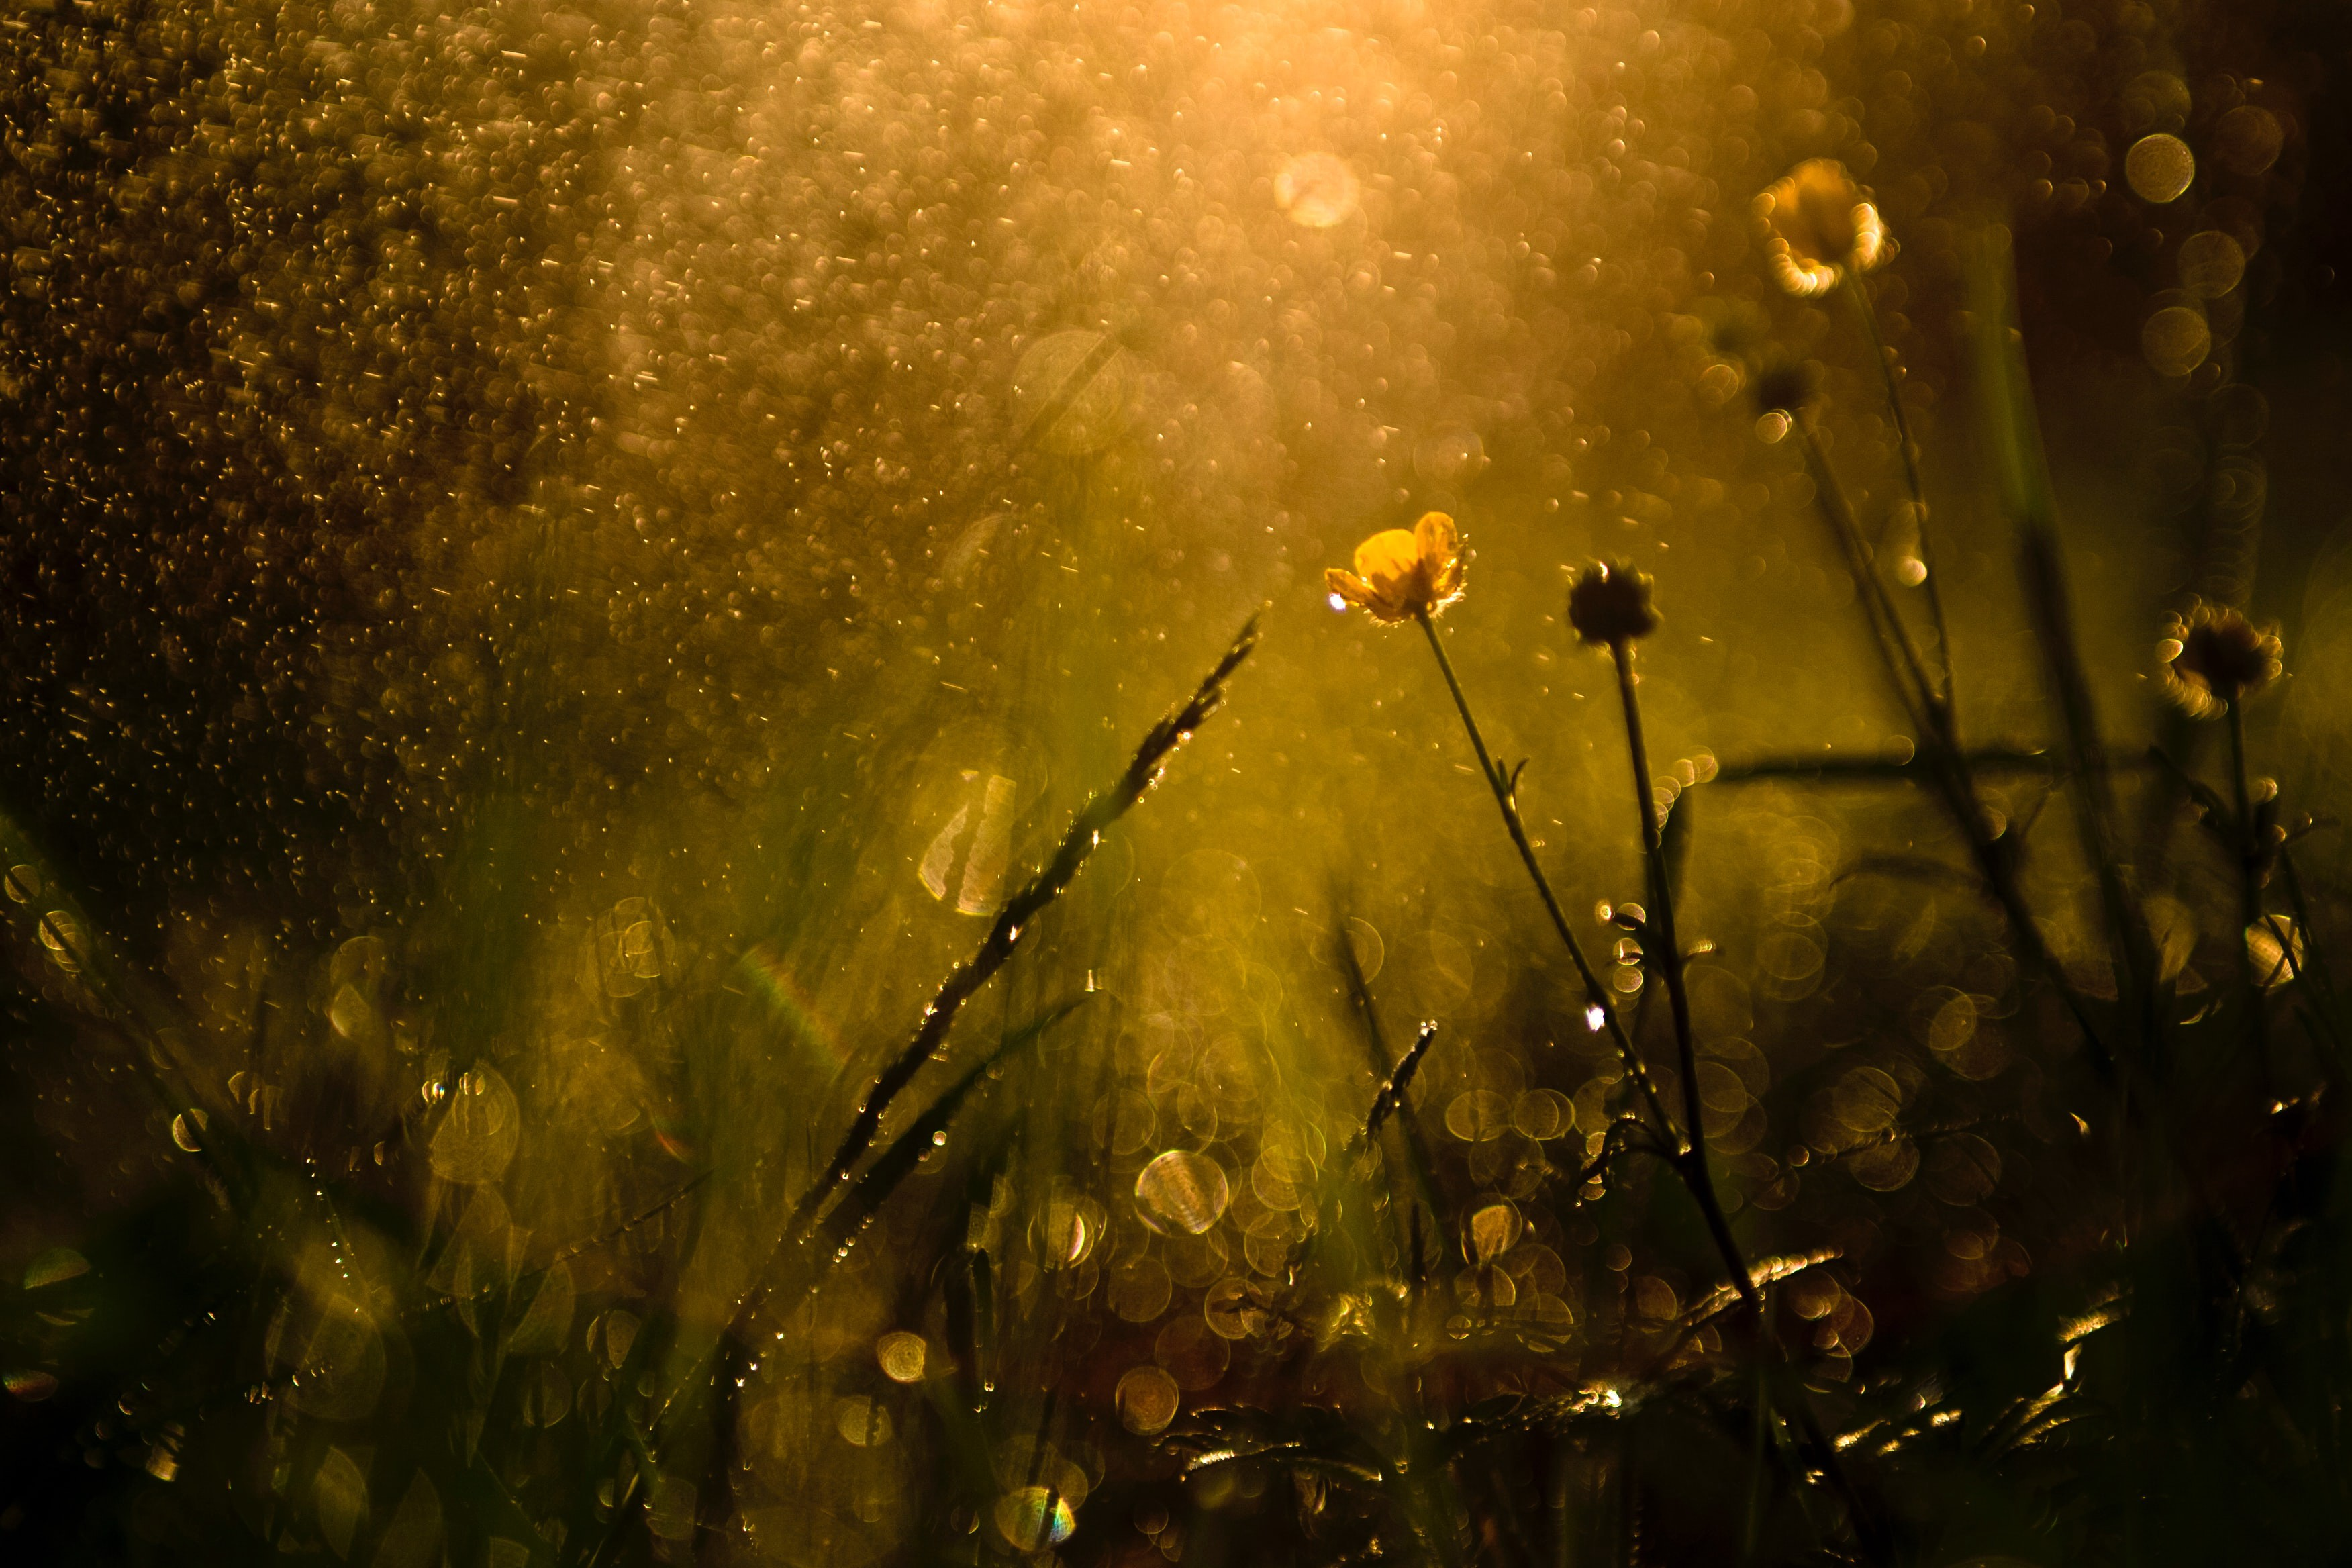 Honey hued meadow of sunlight, shadows and dew.